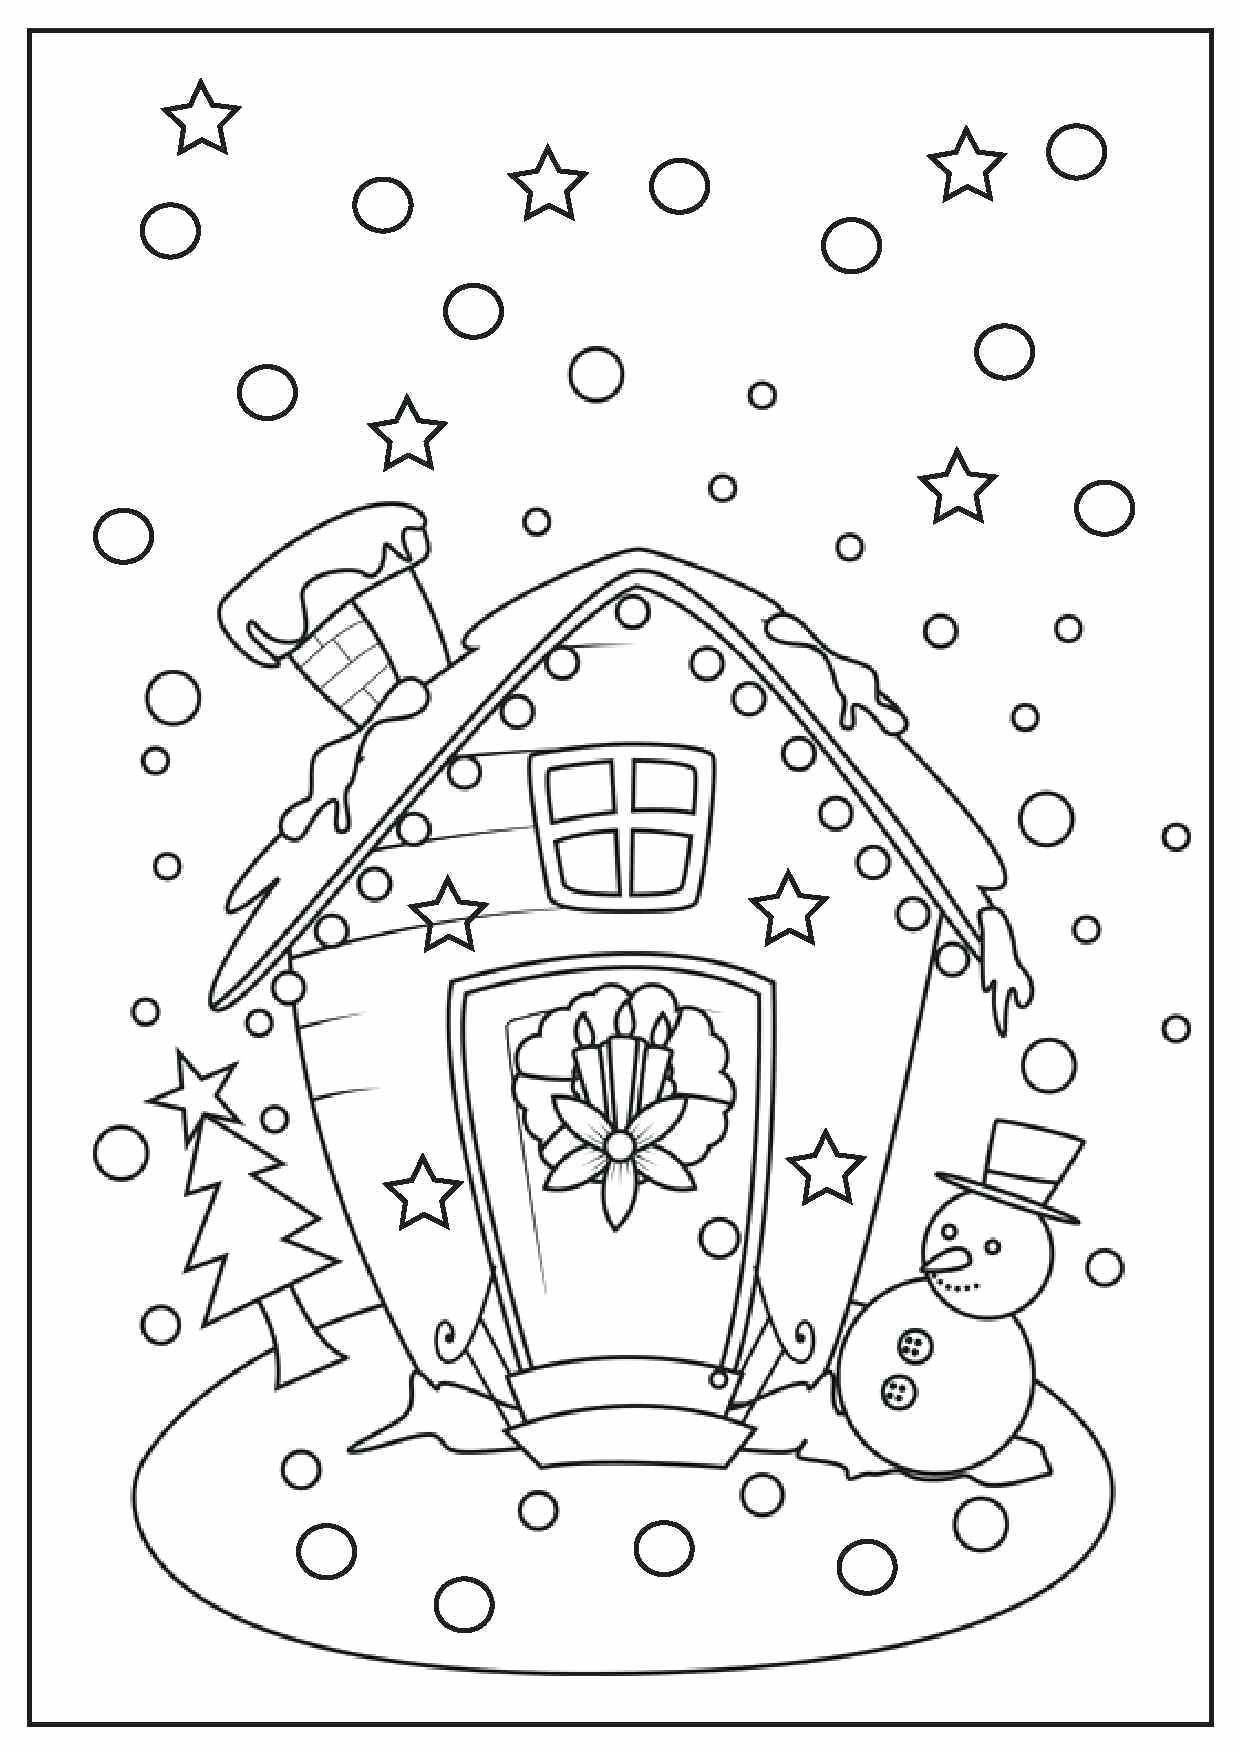 3 Free Math Worksheets Second Grade 2 Subtraction Subtracting 1 Digi…    Printable christmas coloring pages [ 1754 x 1240 Pixel ]